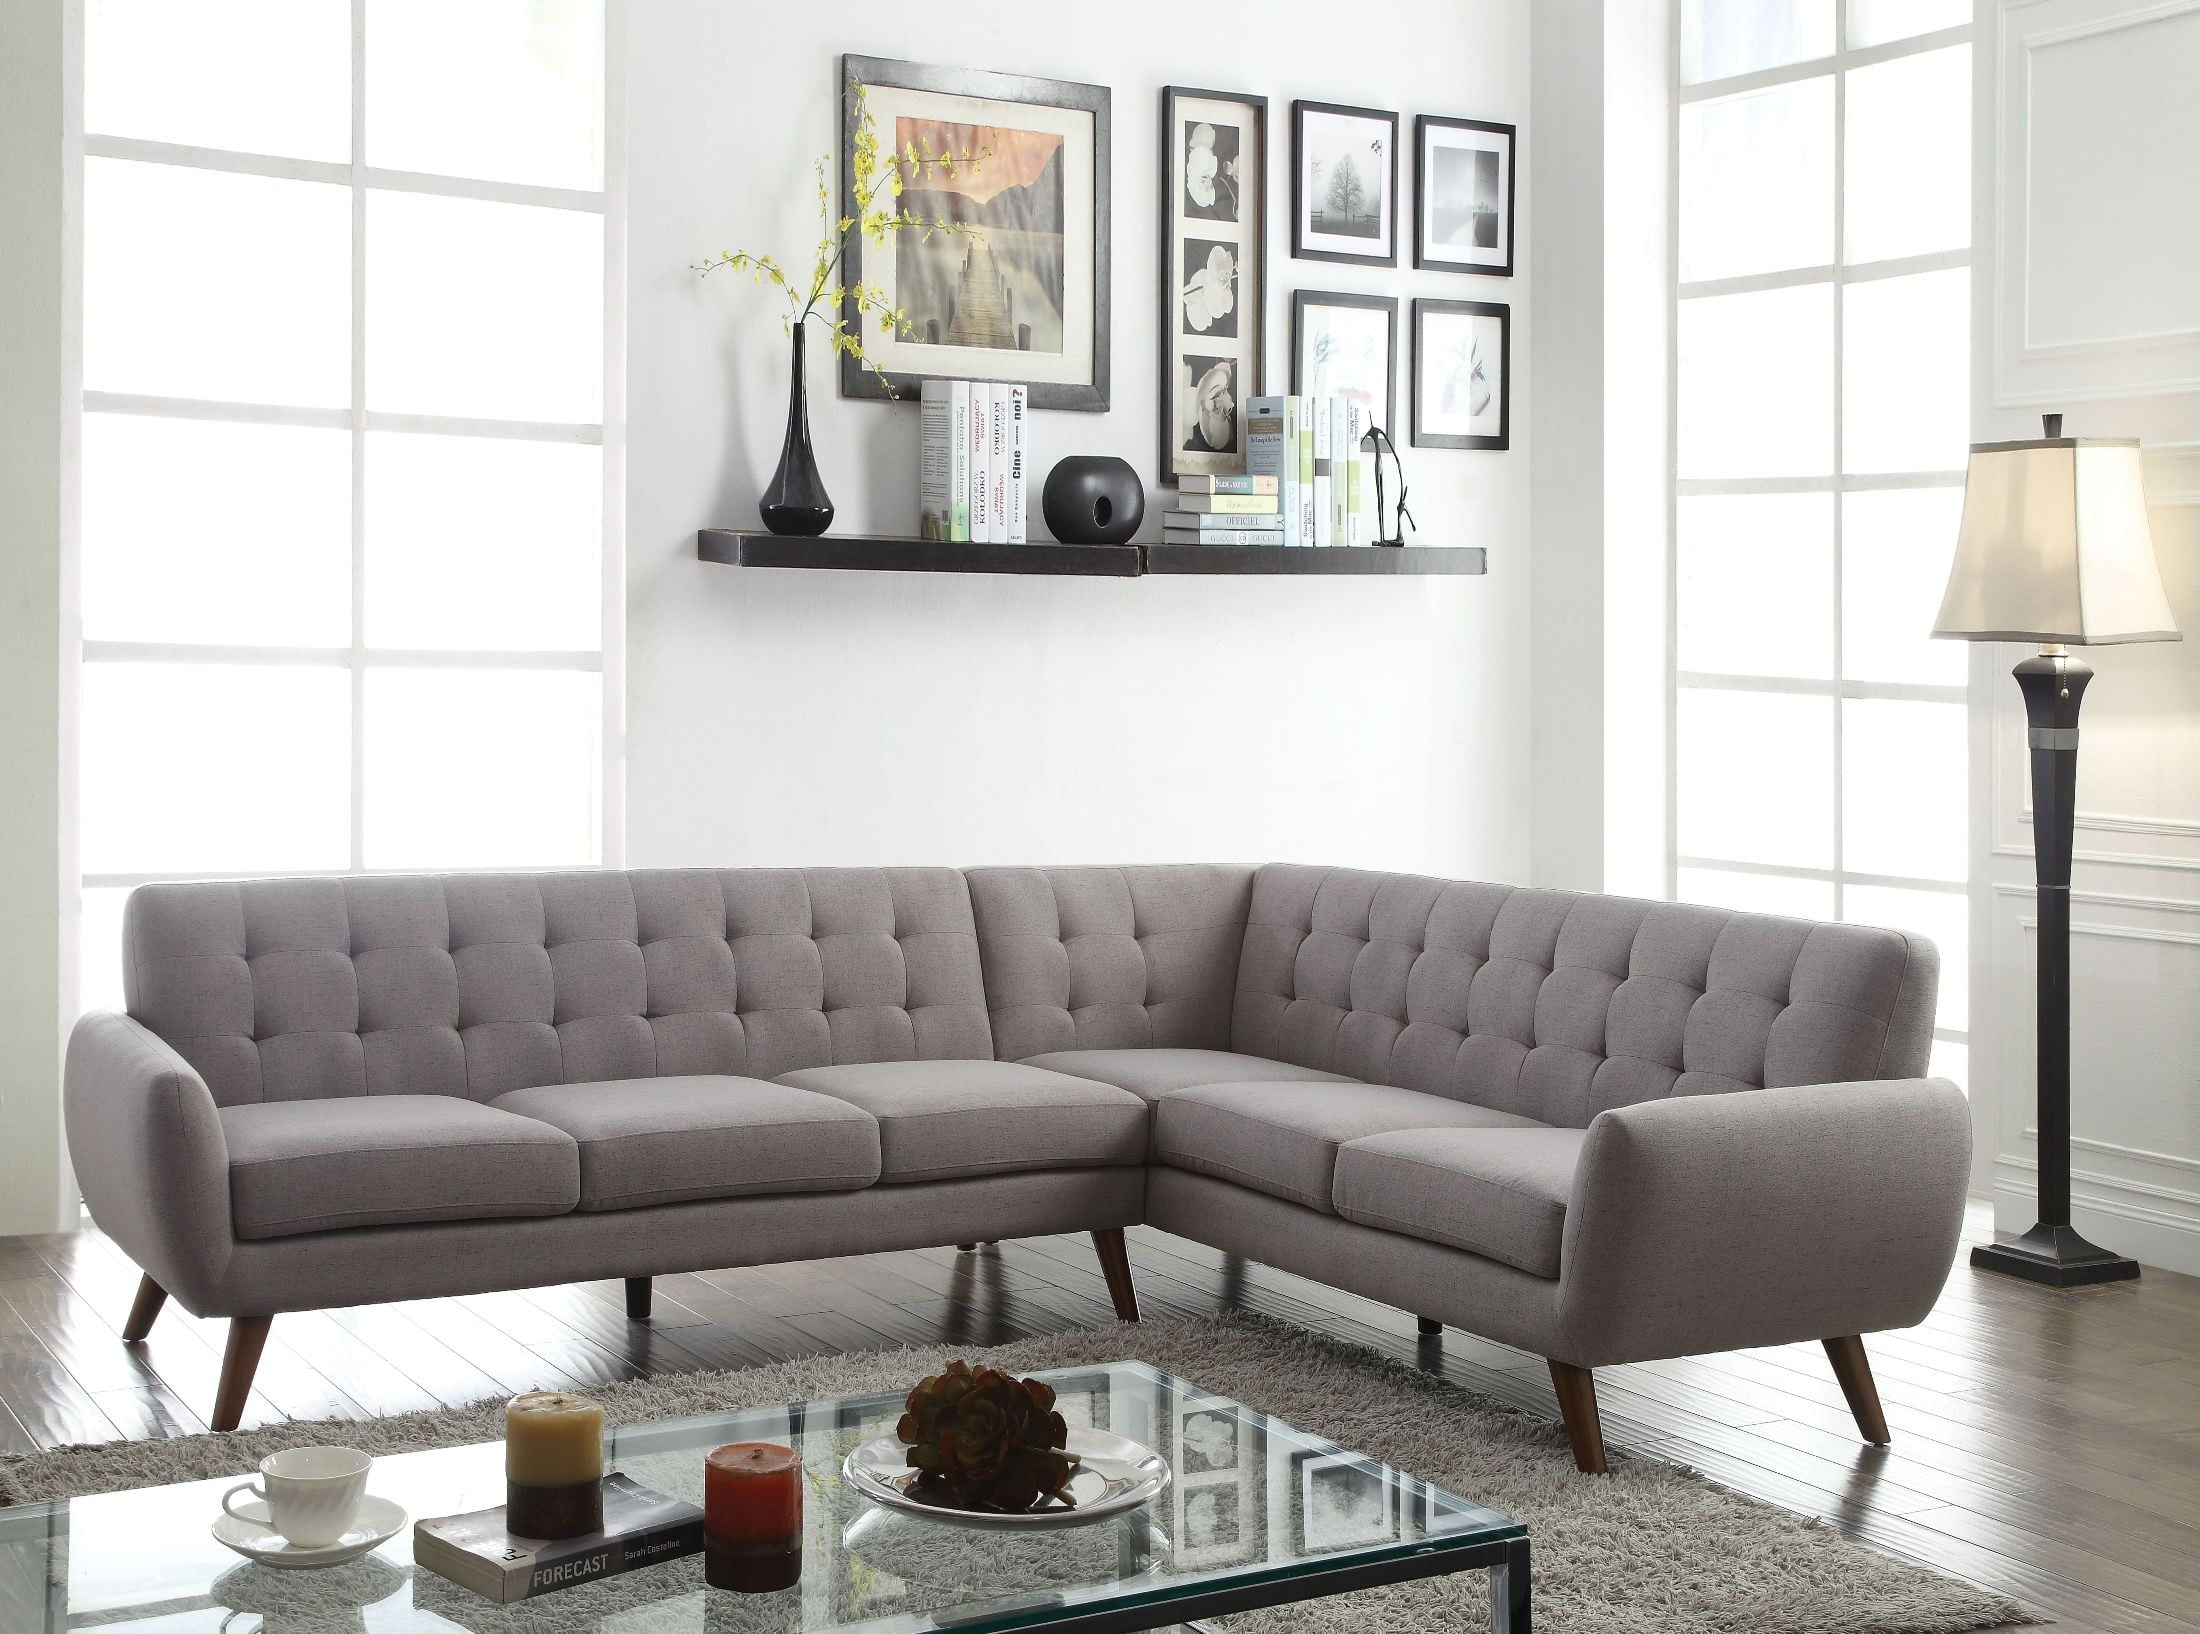 Essick Light Gray Linen Sectional Sofa from Acme | Coleman Furniture